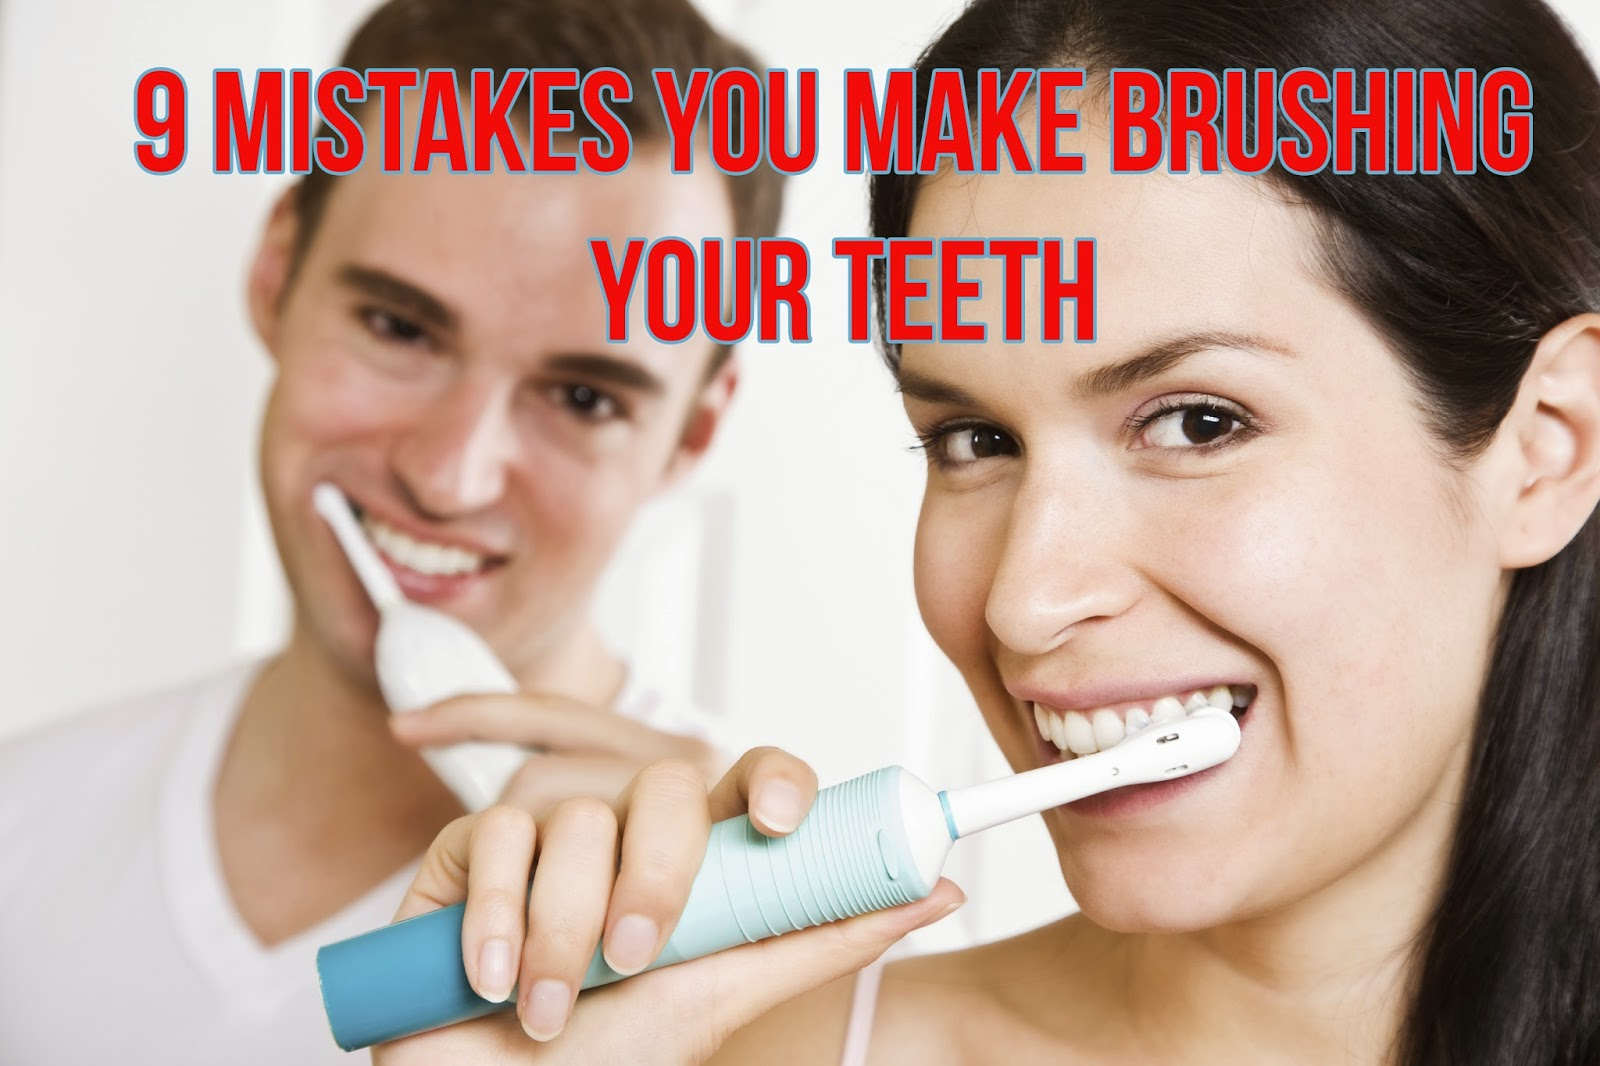 Mistakes You Make Brushing Your Teeth